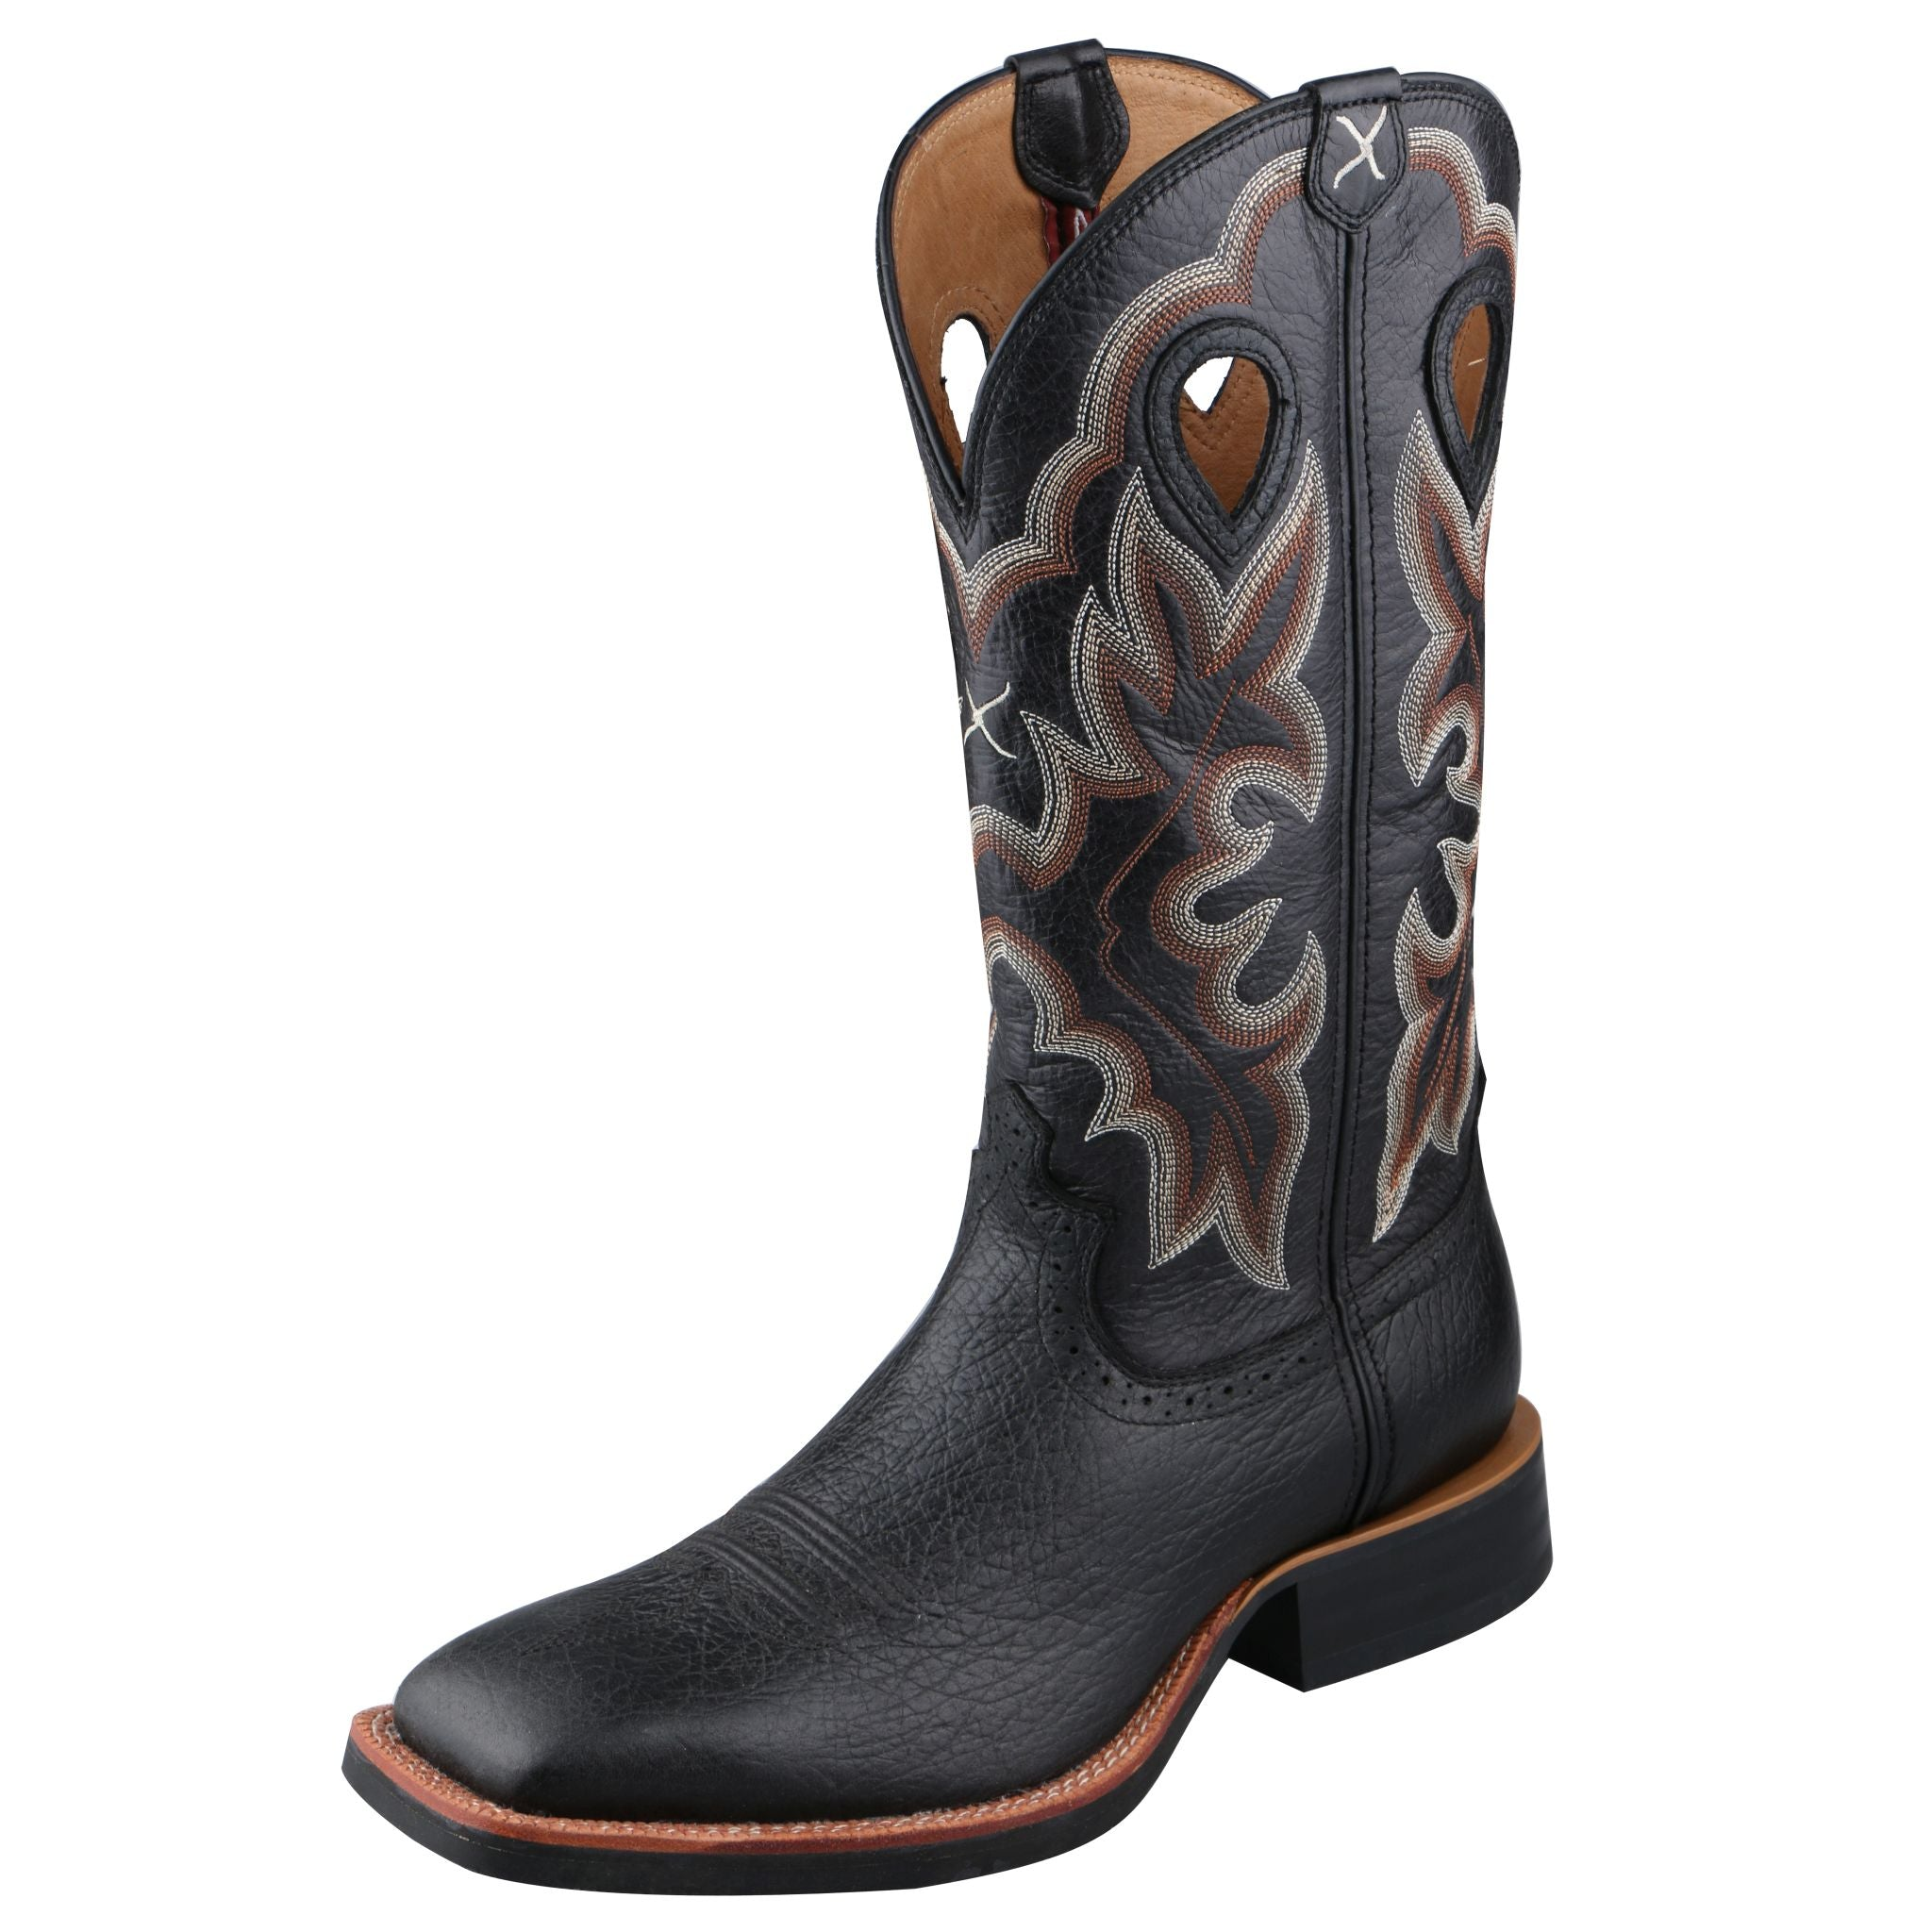 Ruff Stock Boot - Black